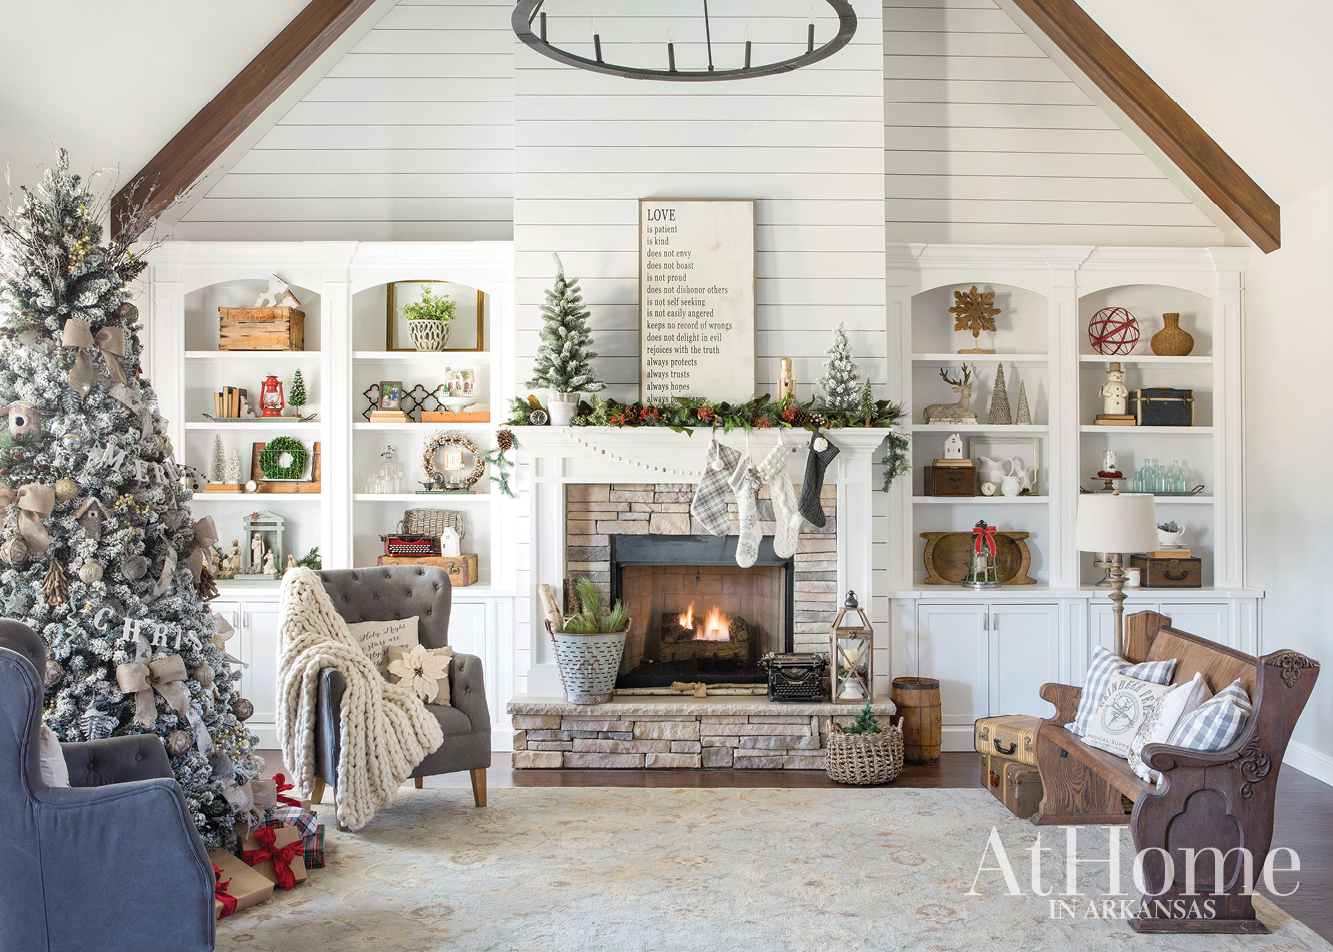 ... Her Home Design Blog, \u201cour Vintage Nest,\u201d Not Only Showcases  Own Home, But Also Illustrates Why She\u0027s Drawn To Decor With A  Contemporary ...